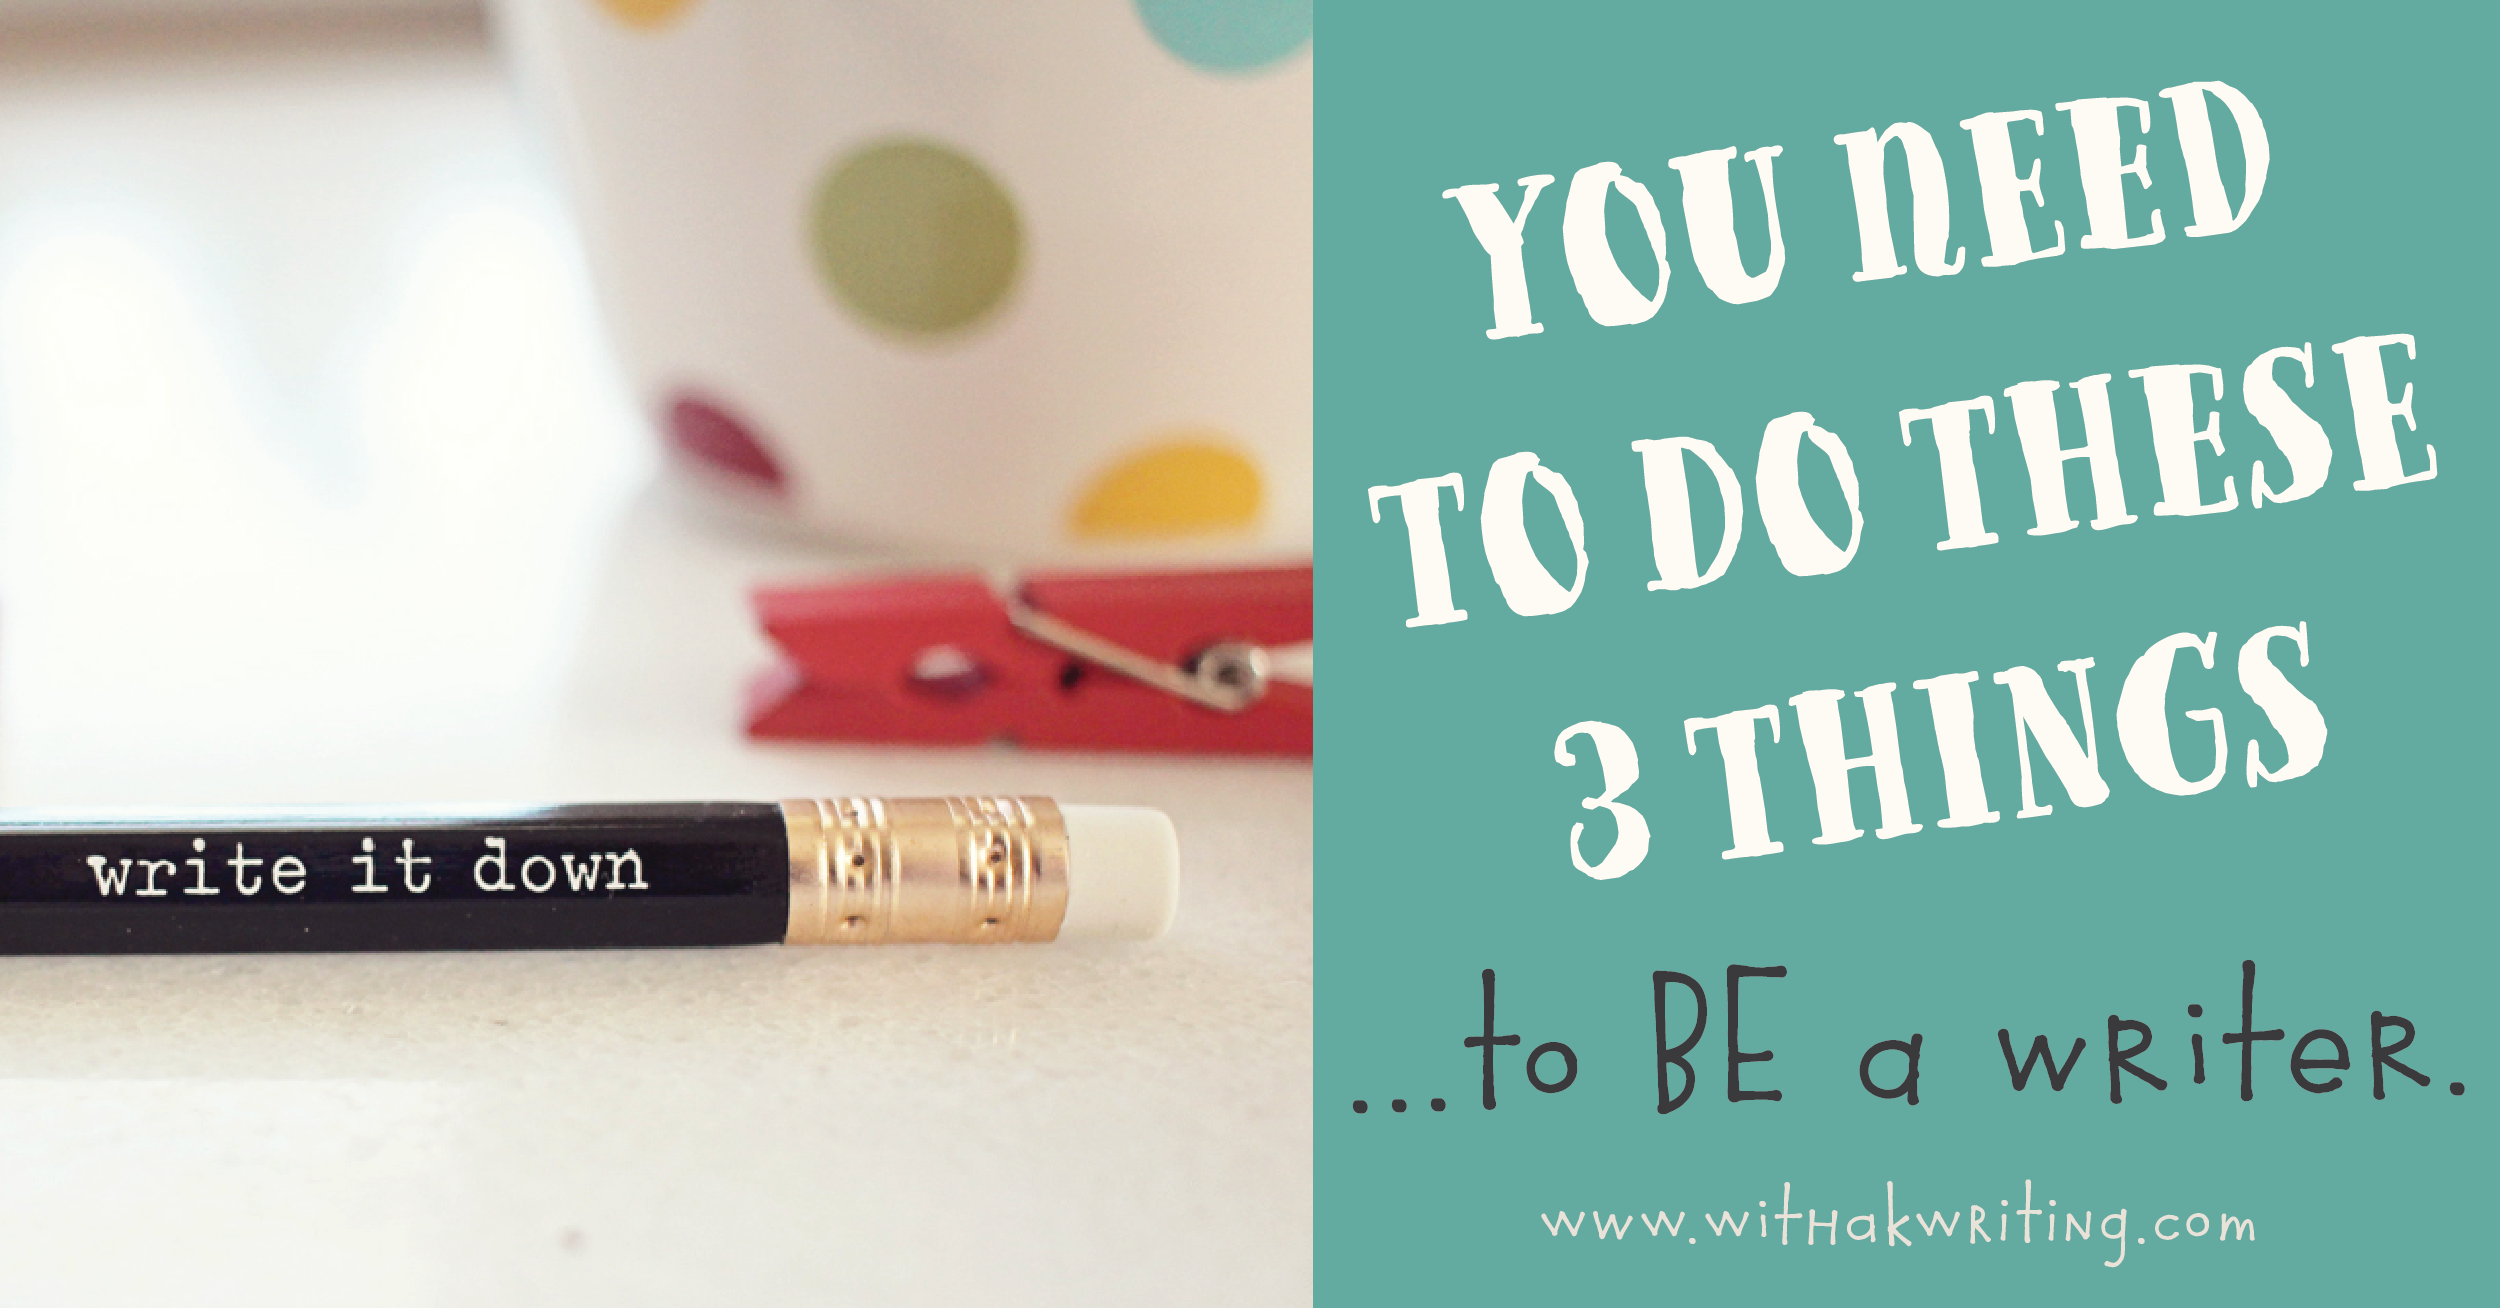 To Actually BE a Writer, you need to be doing these 3 things